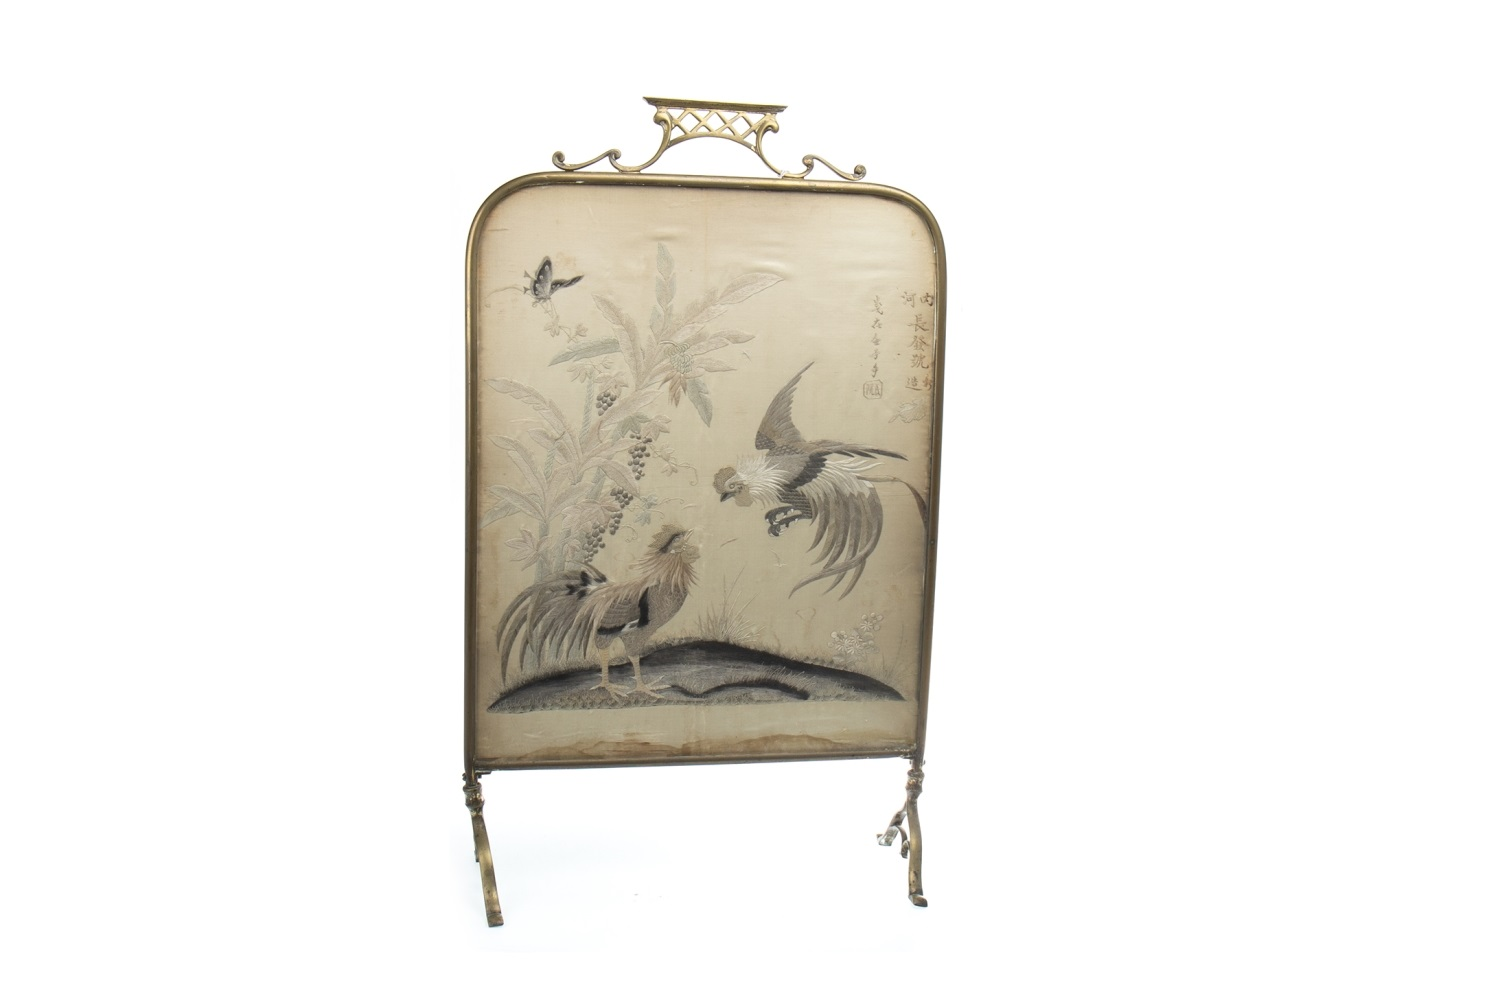 Lot 1065 - A 20TH CENTURY EMBROIDERED FIRE SCREEN